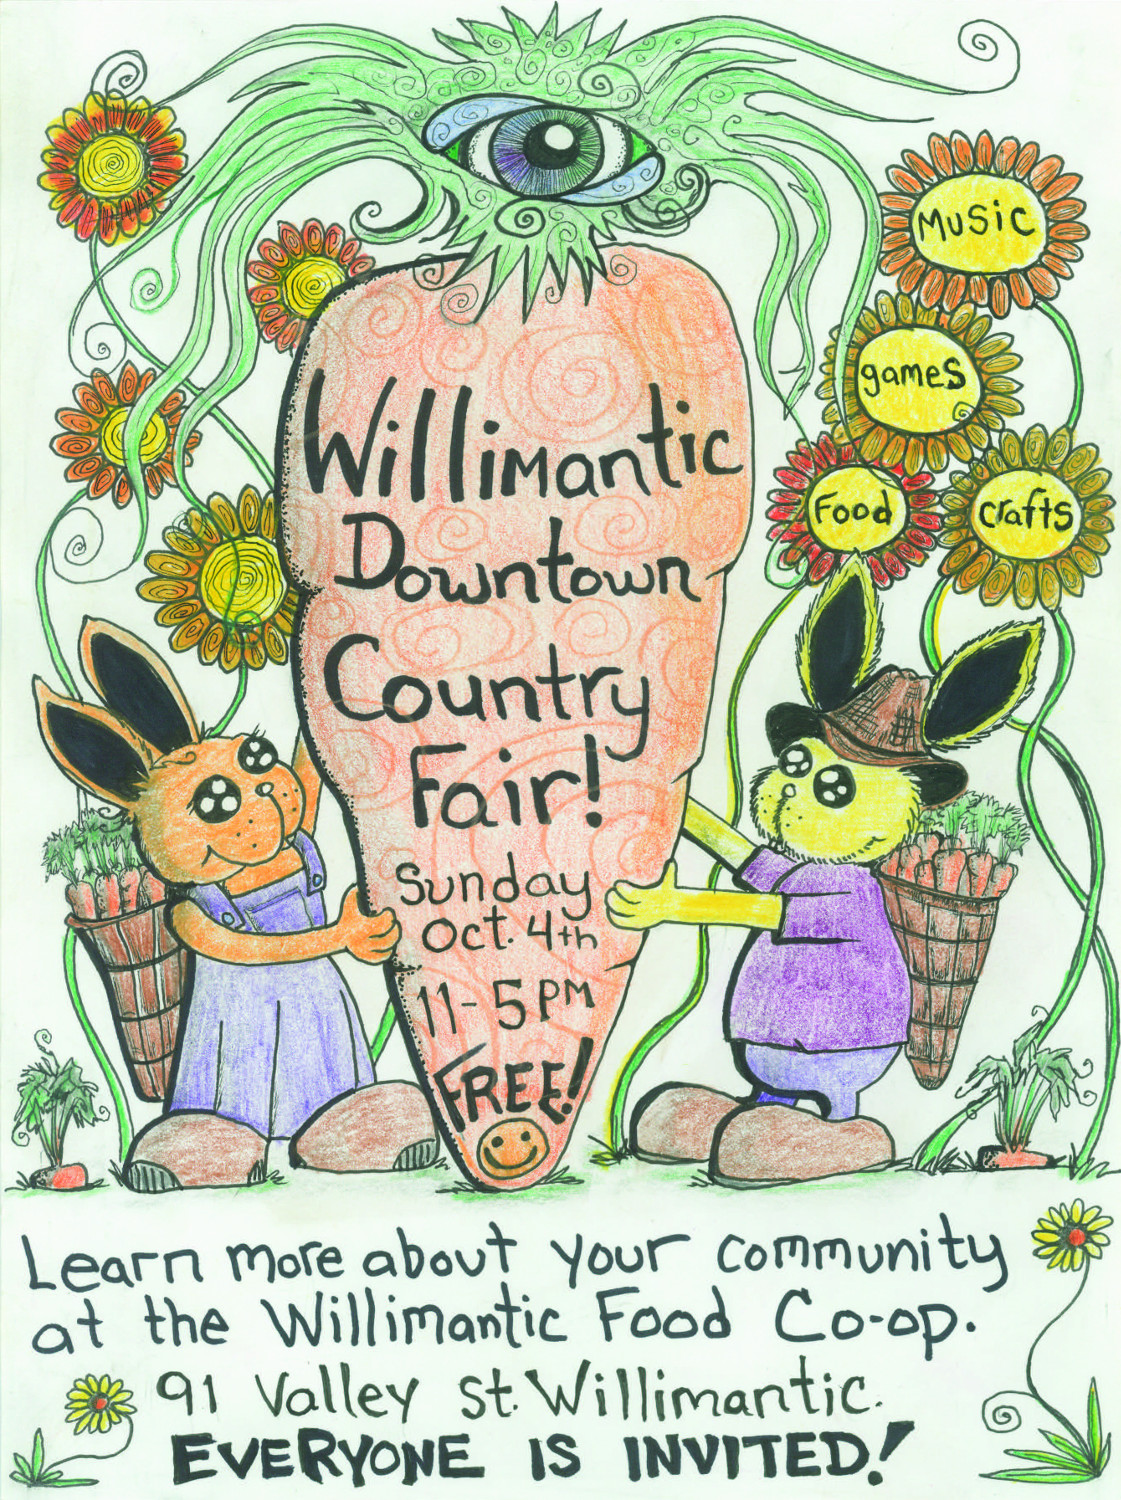 WFC Downtown Country Fair 2015